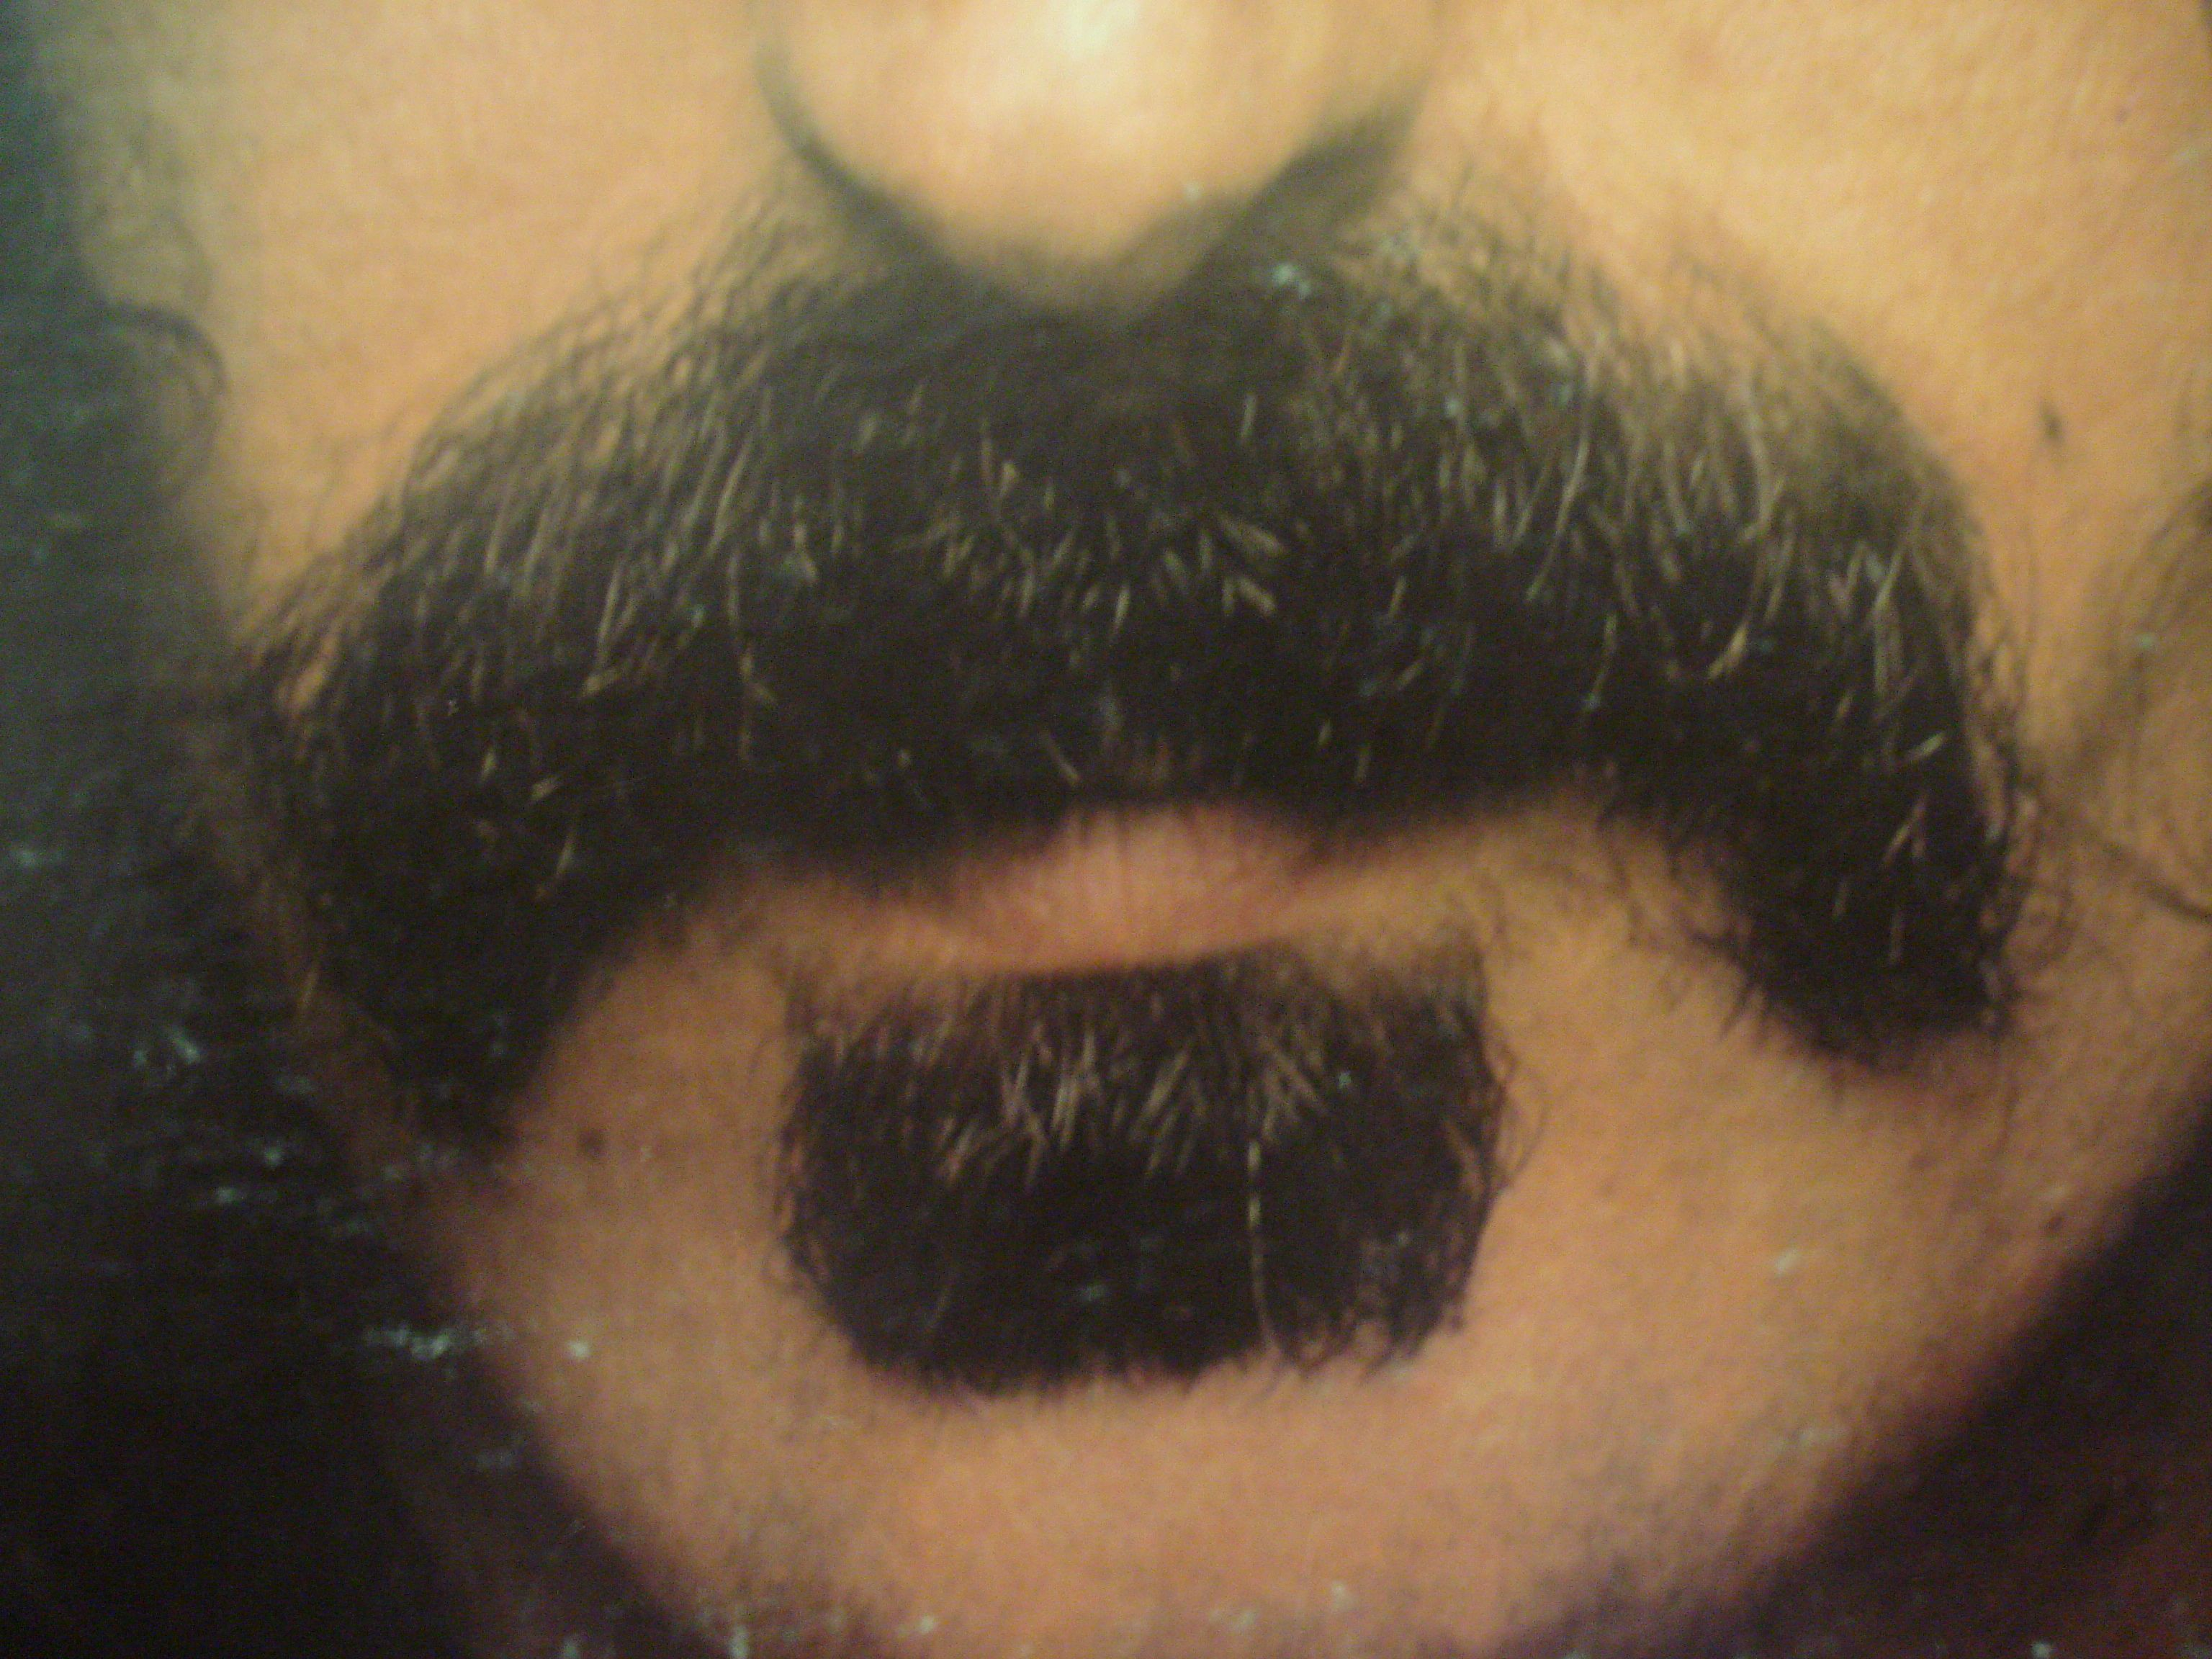 zappa beard - photo #16